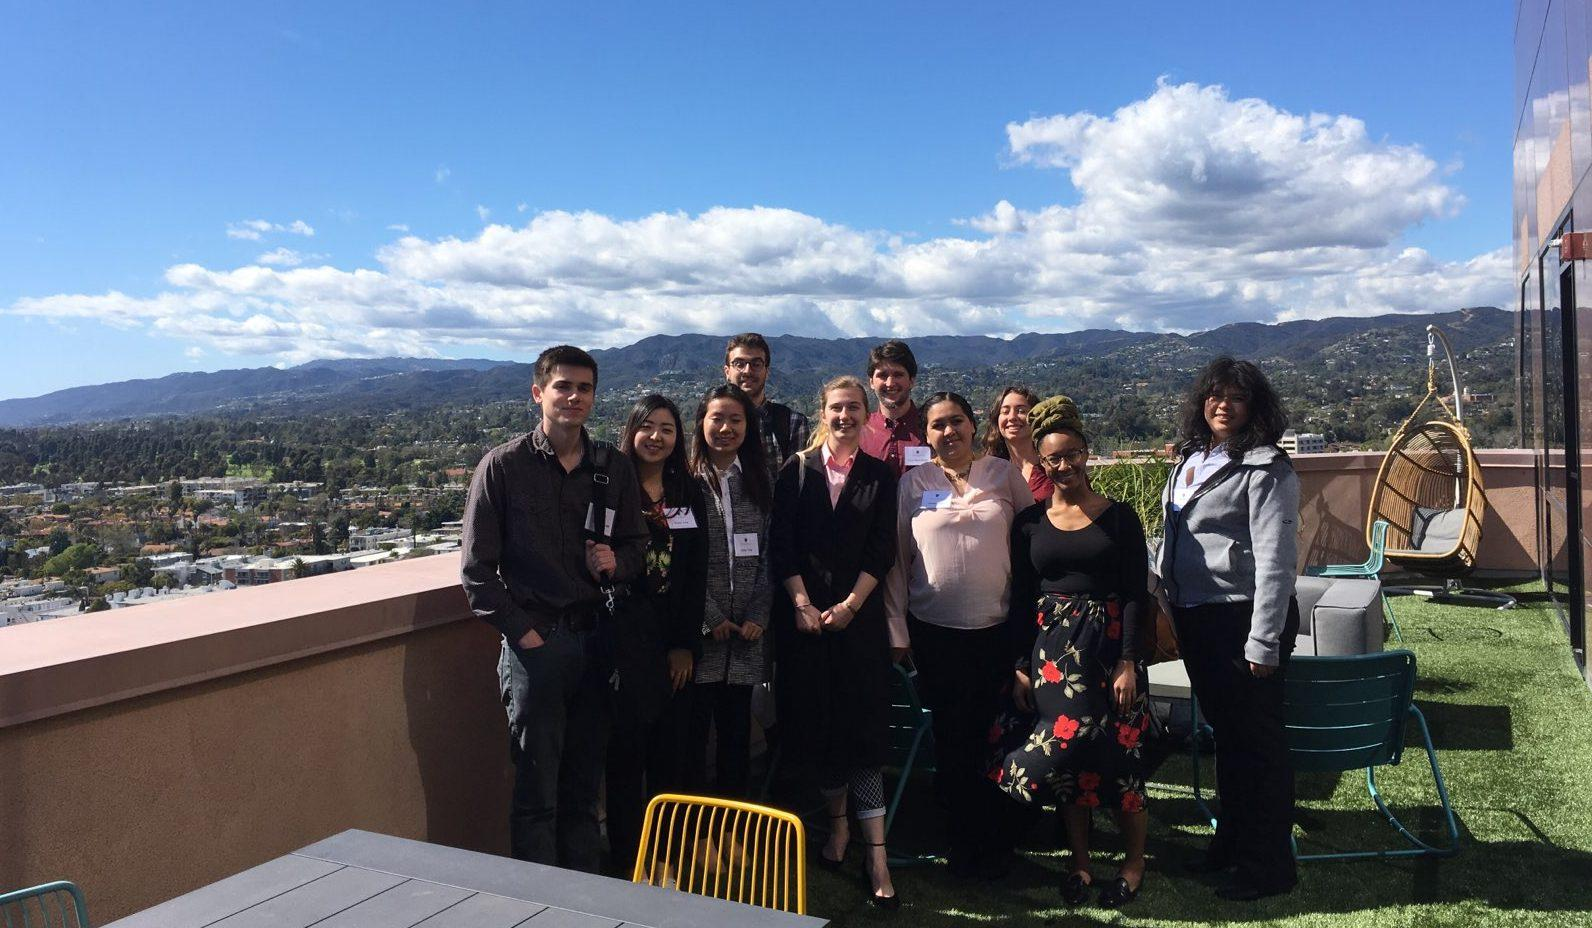 Students in the MacConnect Los Angeles program attend a networking event at People Magazine's West Coast headquarters. Photo courtesy of Associate Director of the CDC Kate Larson.